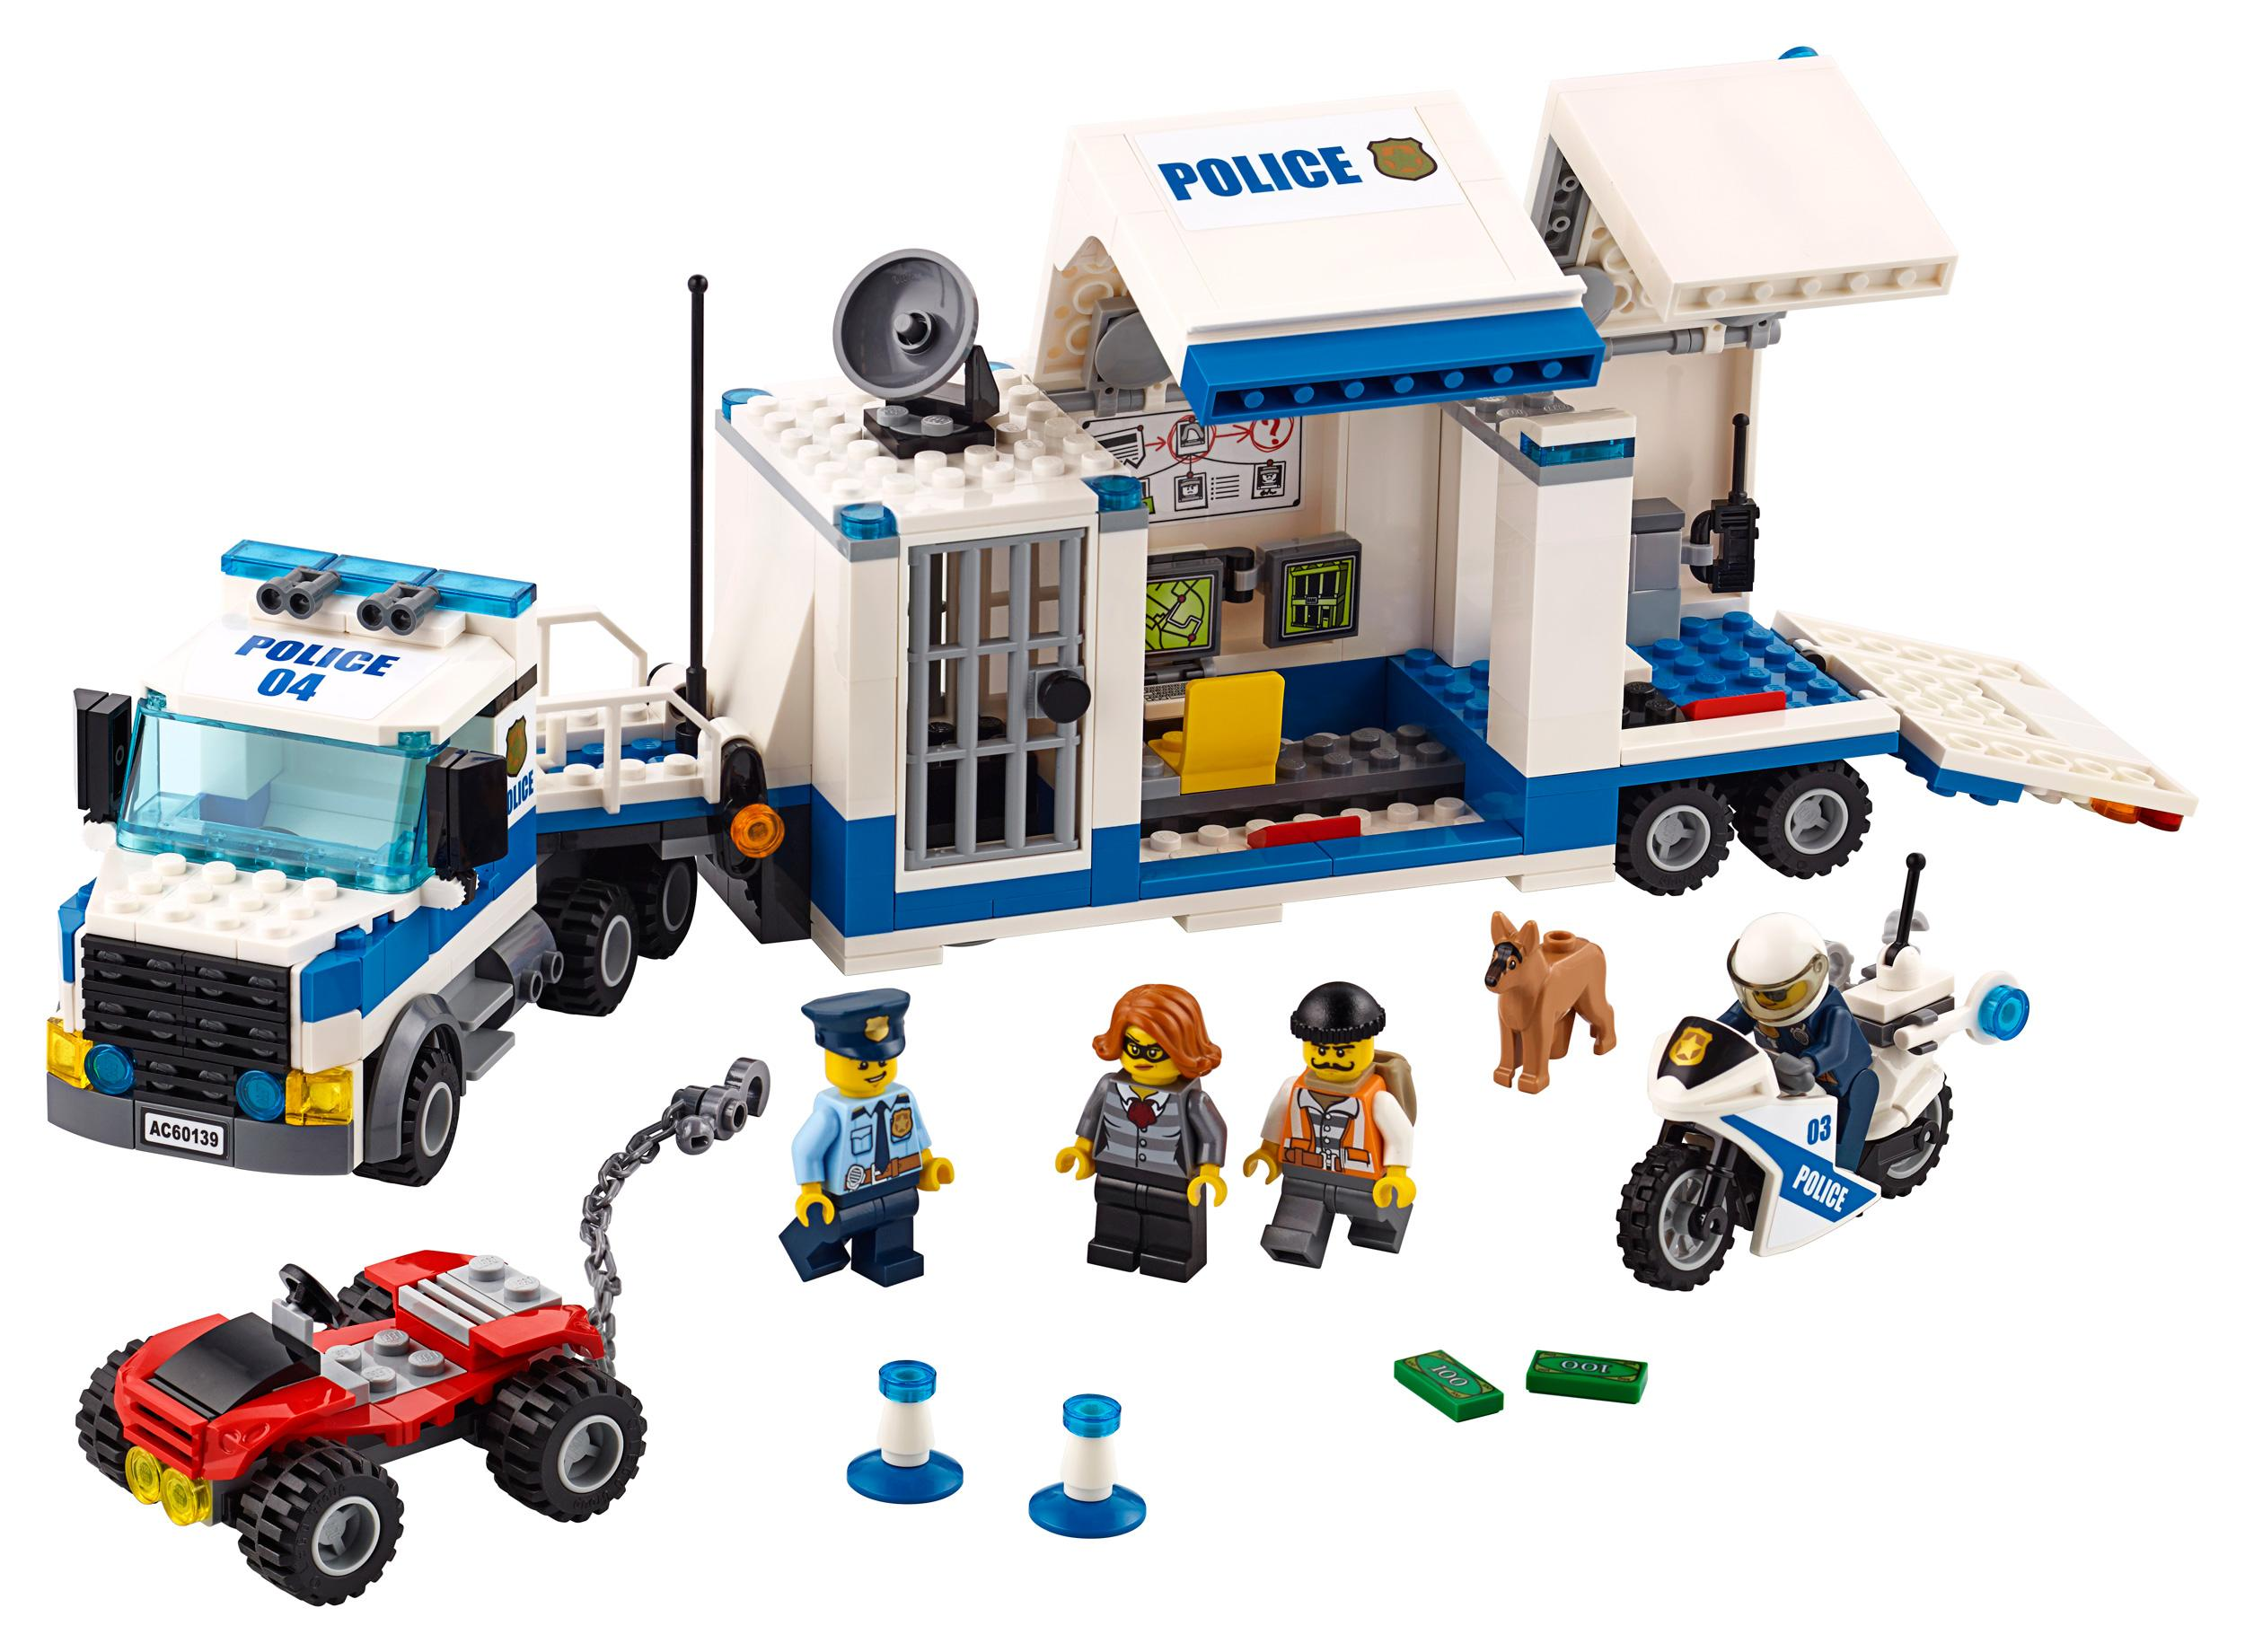 lego city police mobile command center truck. Black Bedroom Furniture Sets. Home Design Ideas